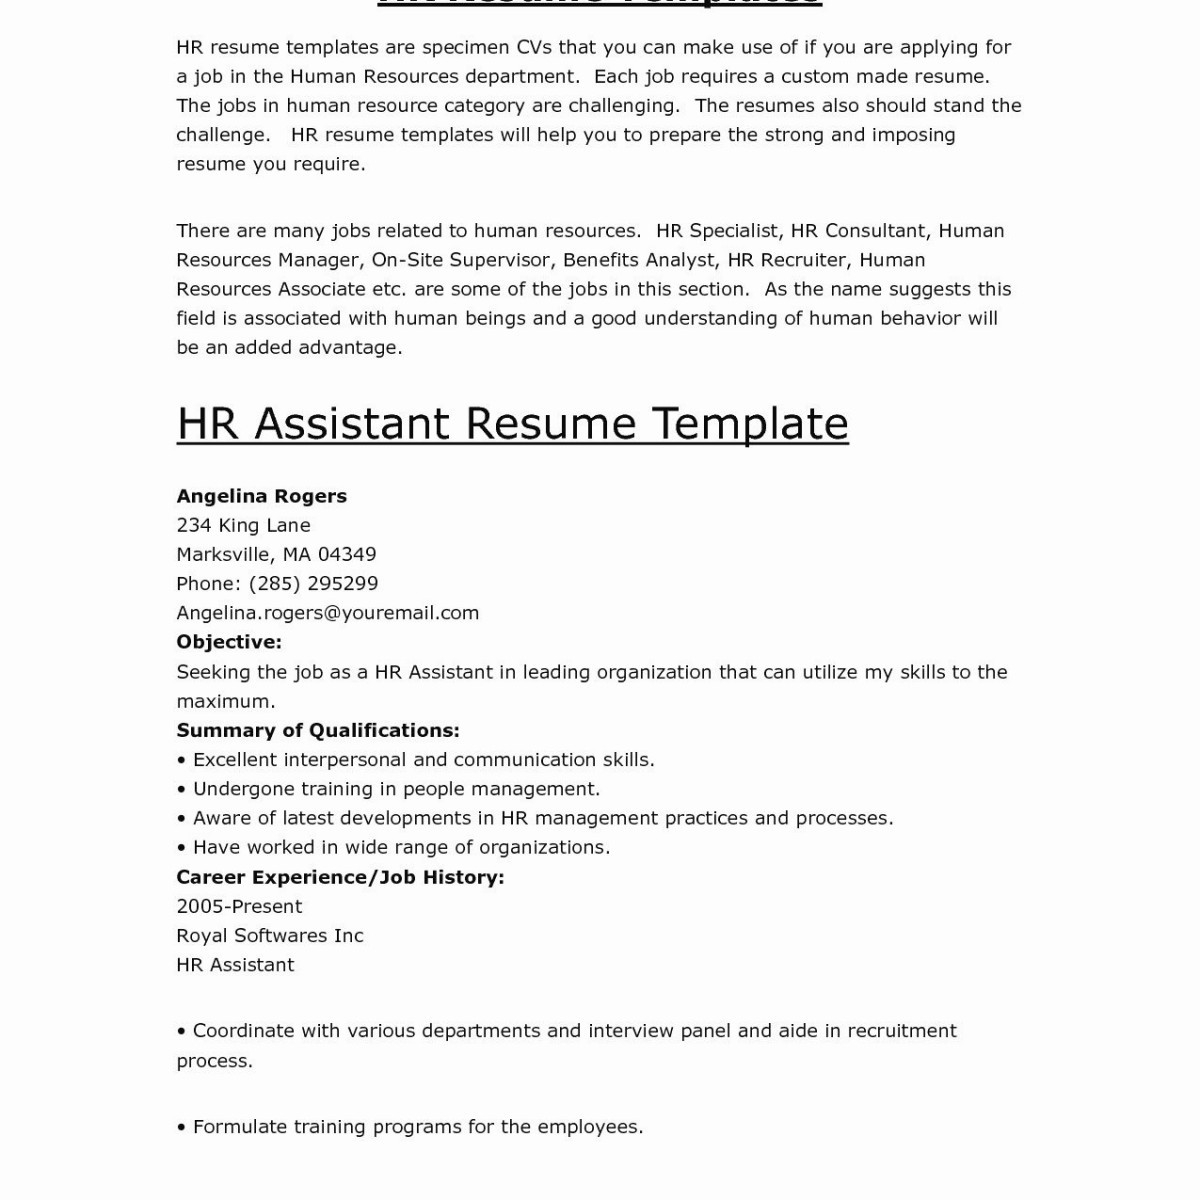 Stay at Home Mom Job Description for Resume - 37 Charming Nanny Job Description for Resume H9a